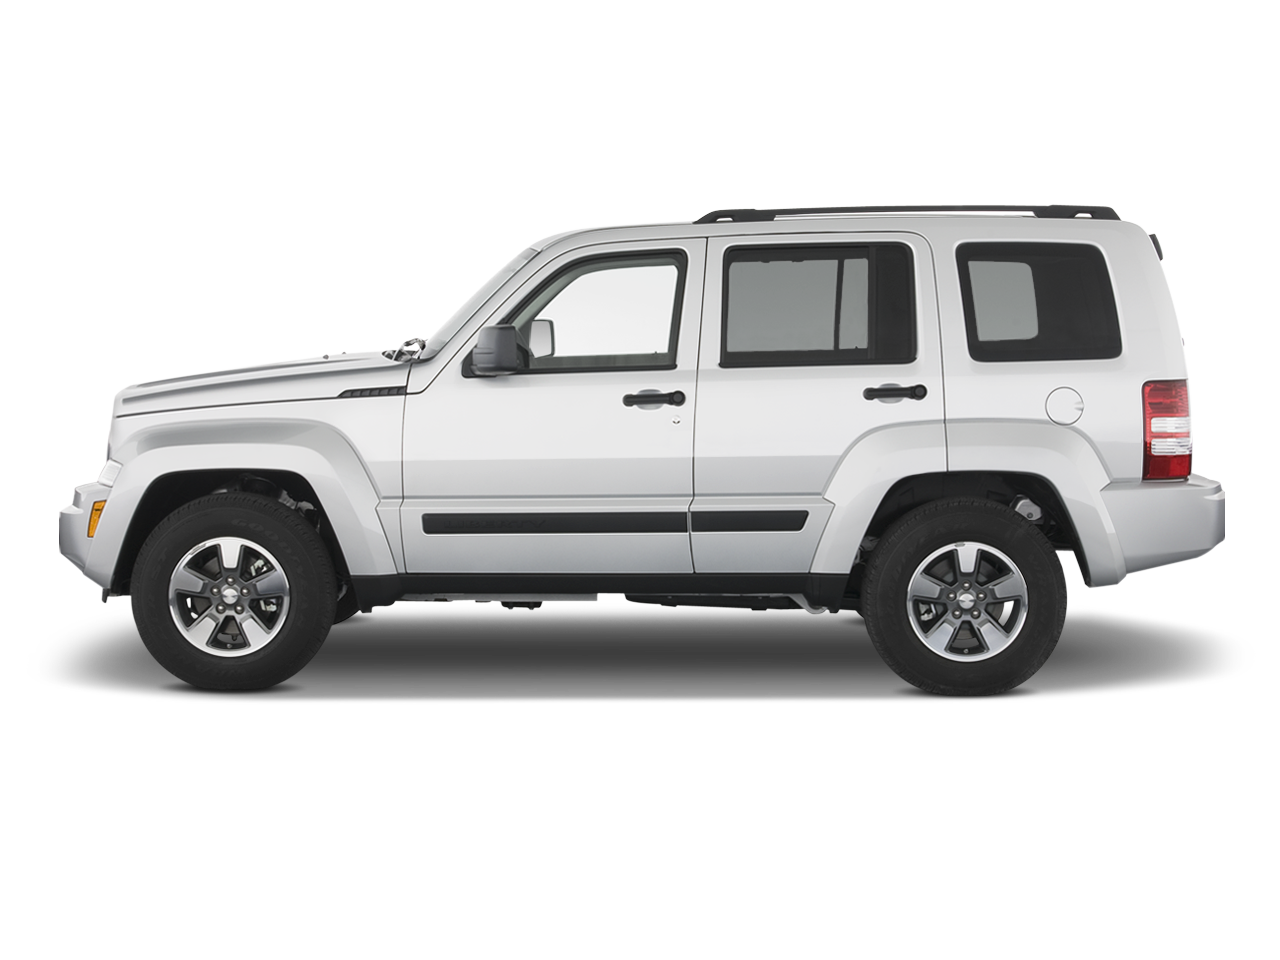 2004 Jeep Liberty Mpg >> Chrysler CEO: Jeep Liberty, Dodge Nitro Replacements In the Works